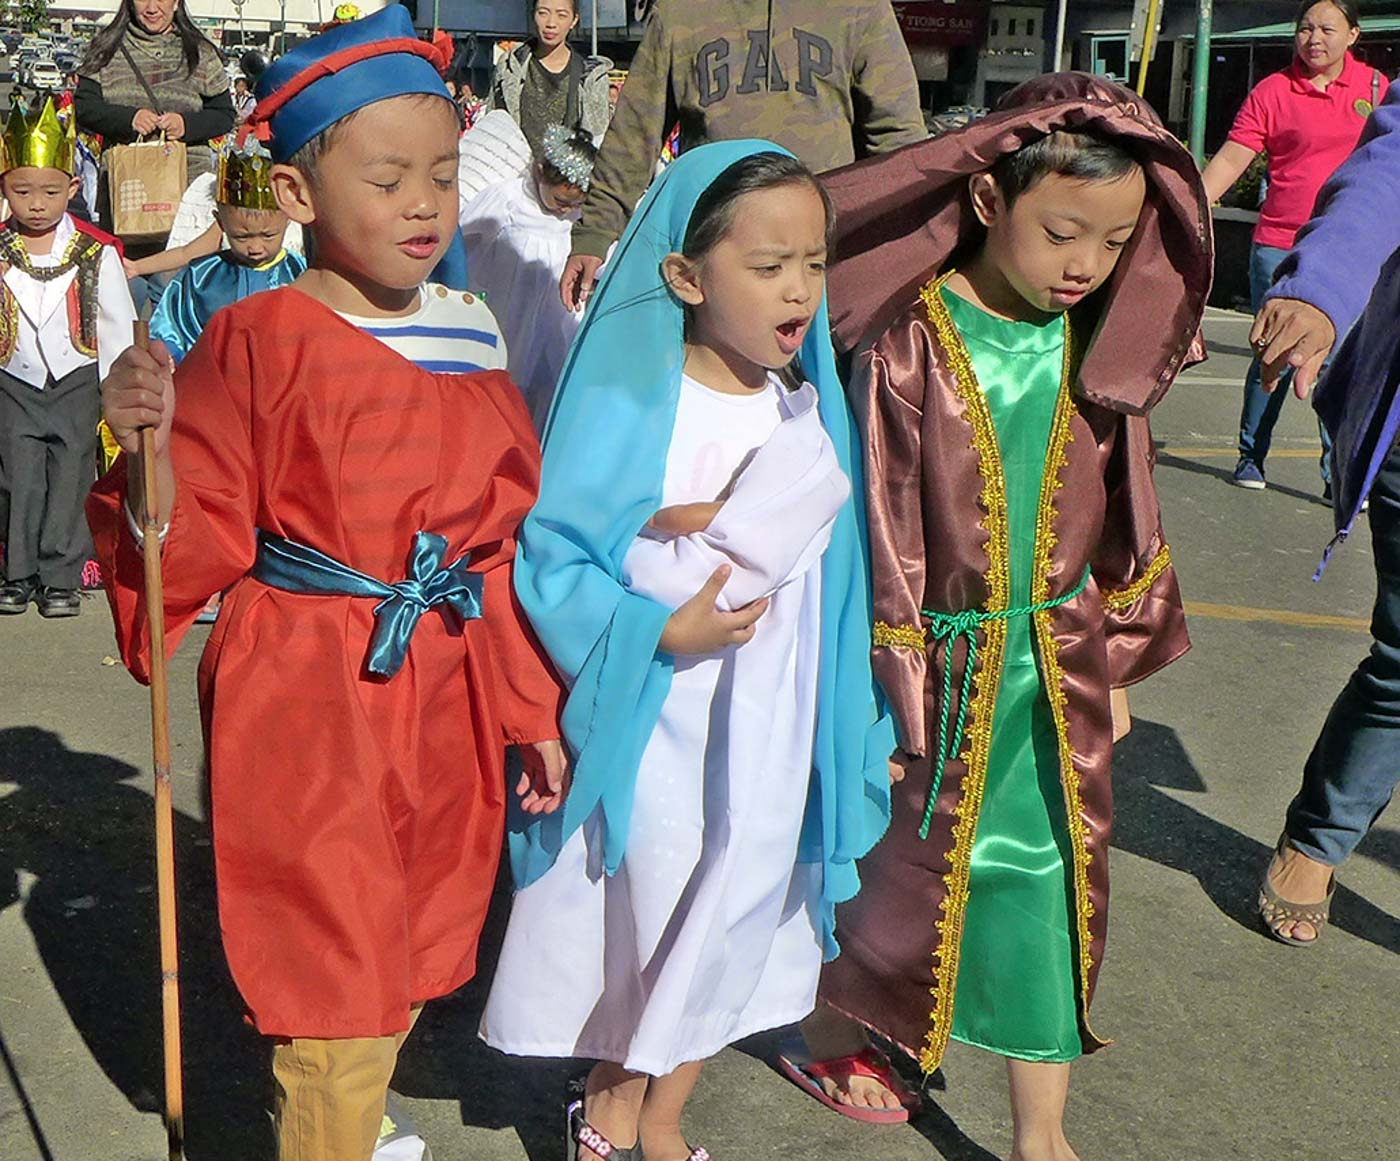 BELEN. Kids dressed up as Mary, Joseph, and one of the shepherds